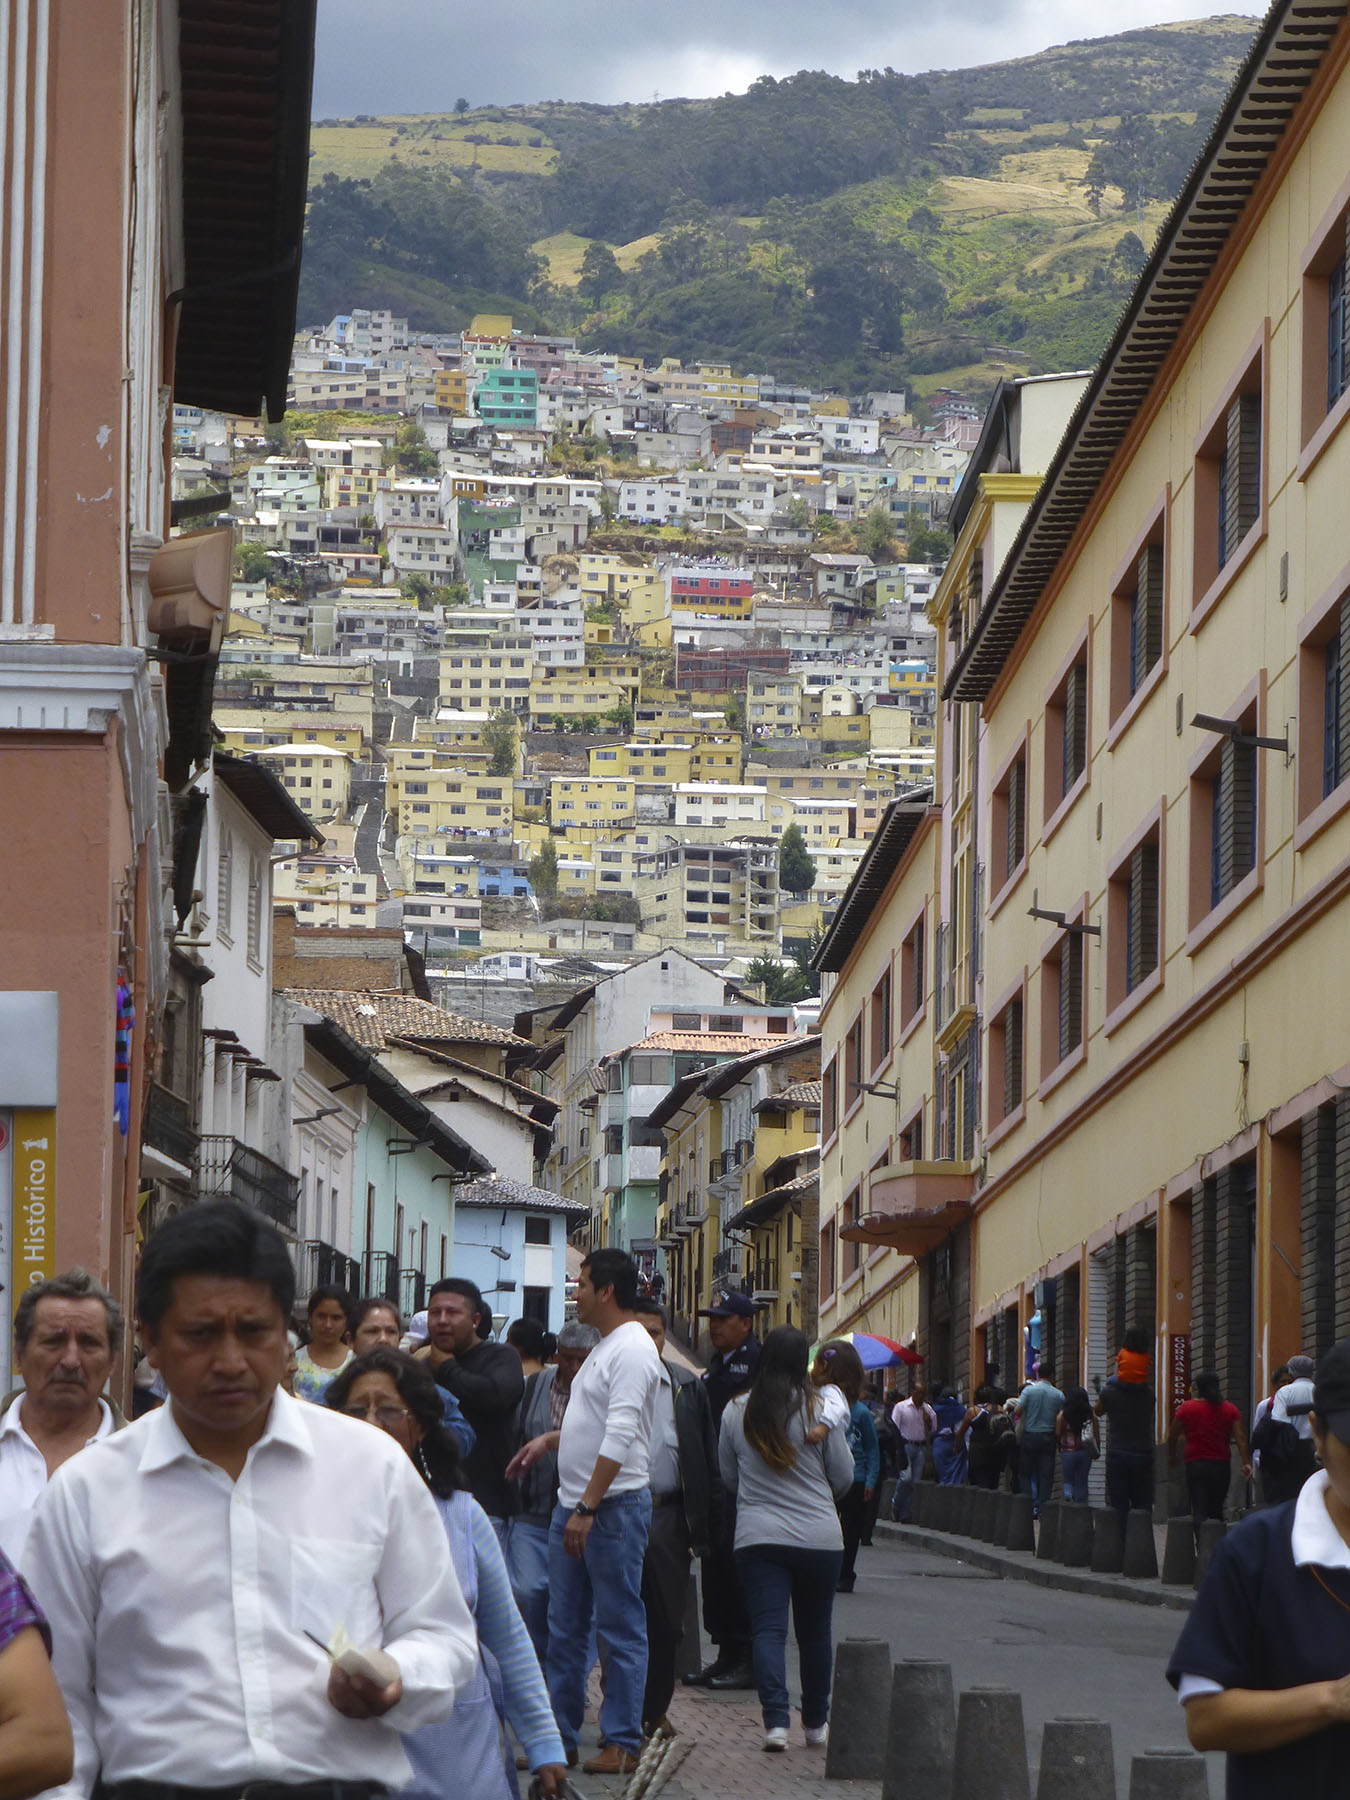 A Typical Street View In Quito